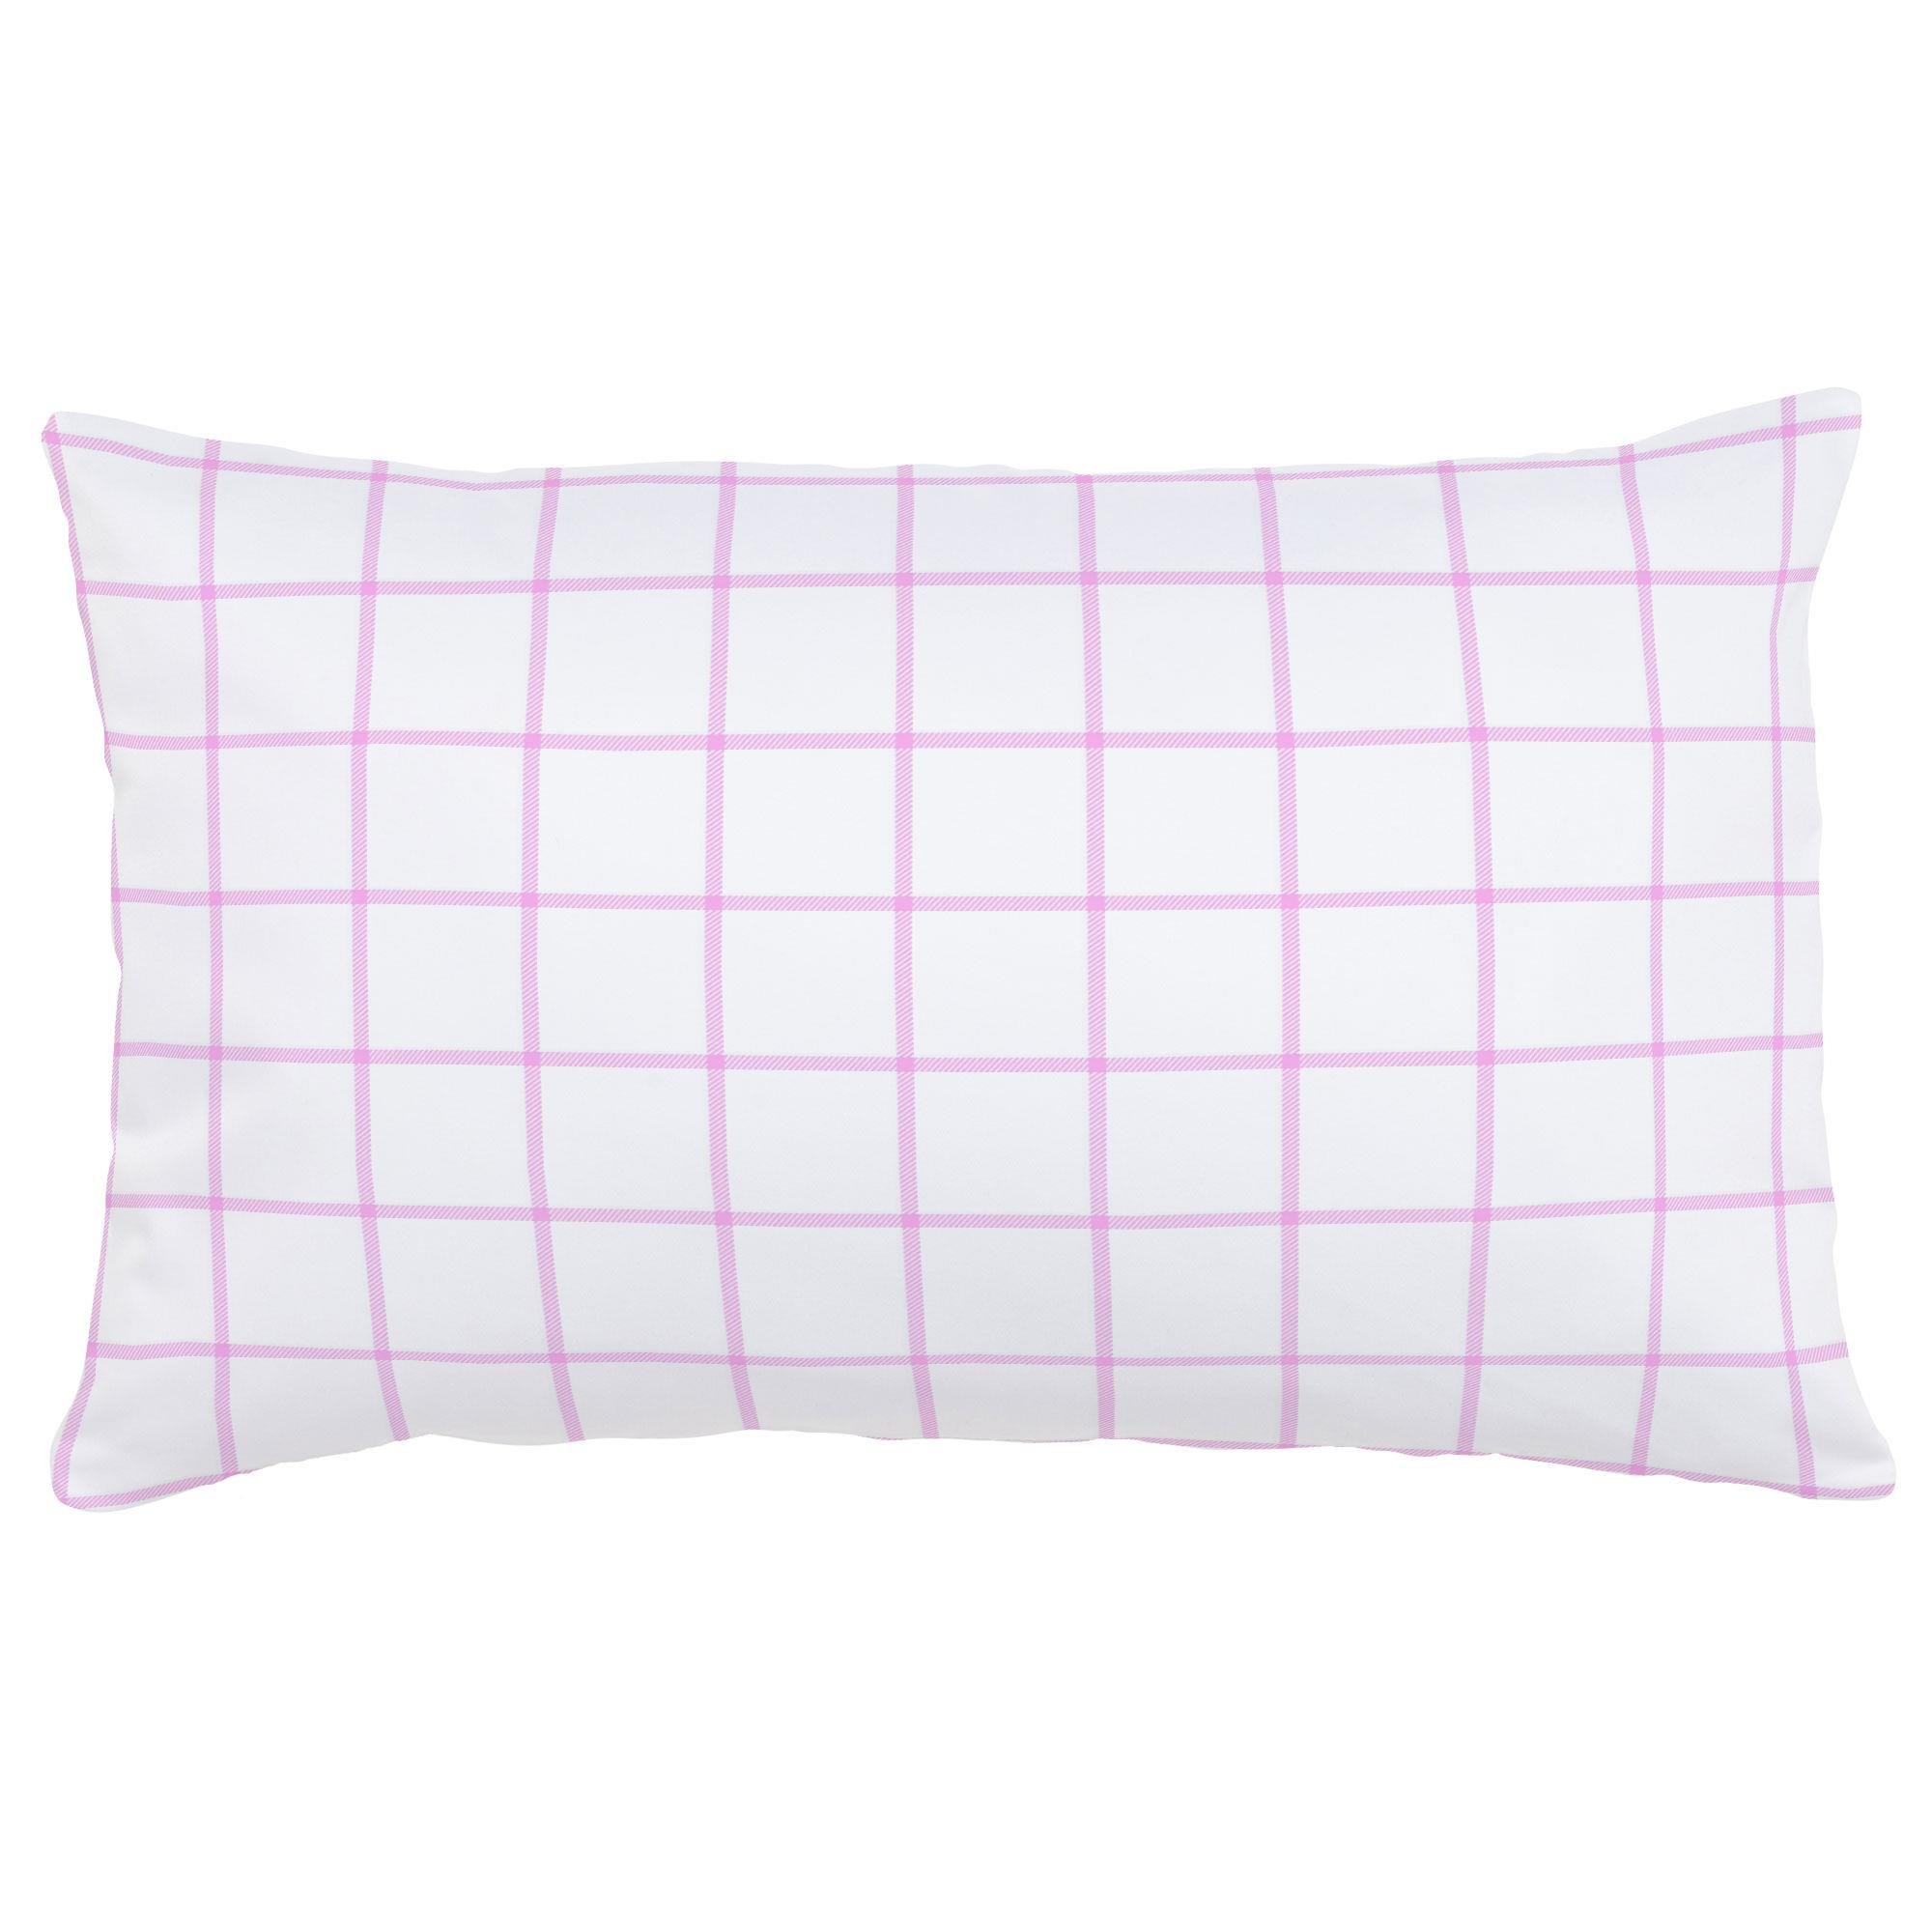 Carousel Designs Orchid Windowpane Lumbar Pillow - Organic 100% Cotton Lumbar Pillow Cover + Insert - Made in the USA